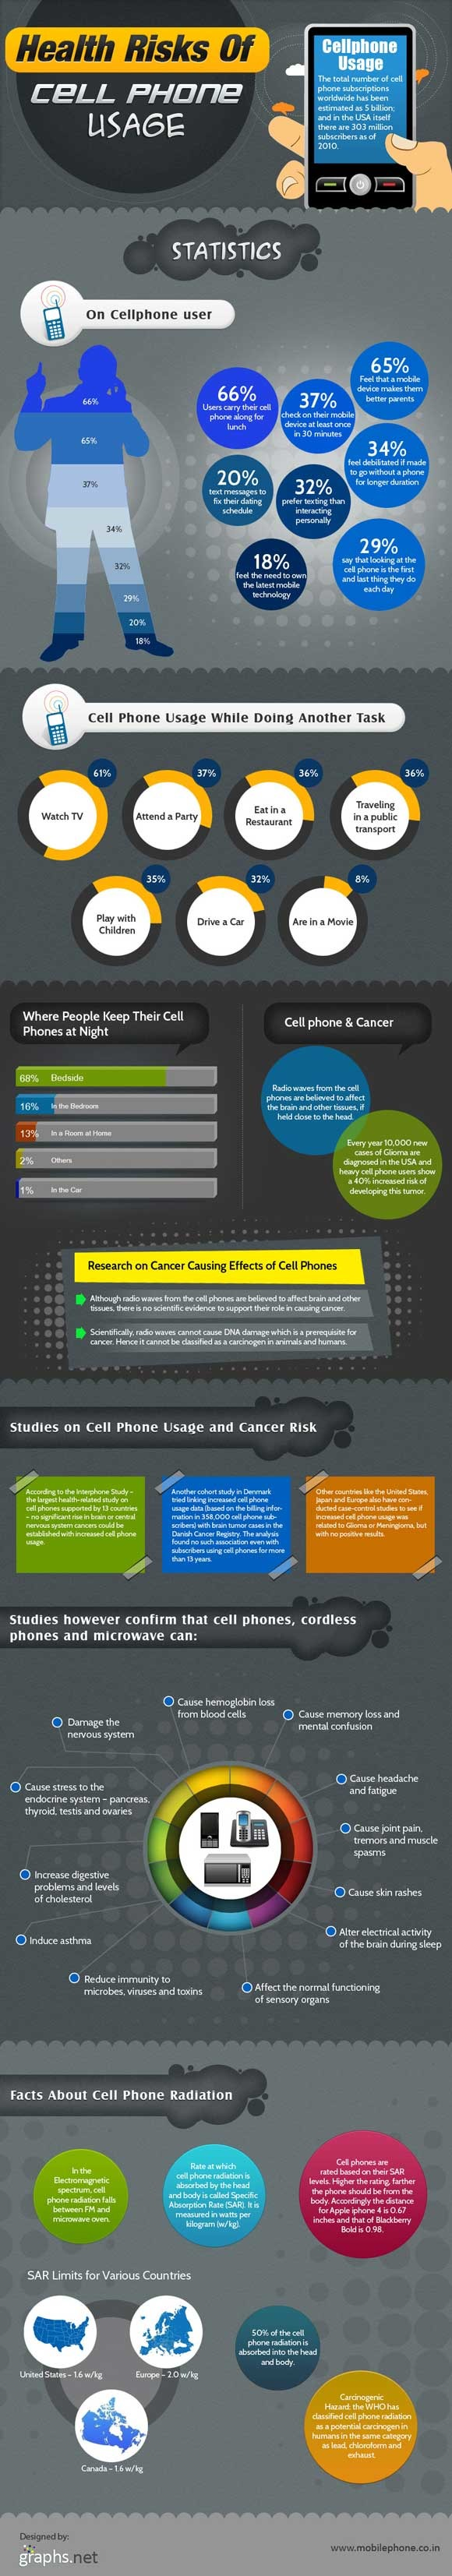 How Cell Phones adversely affect your health [Infographic]